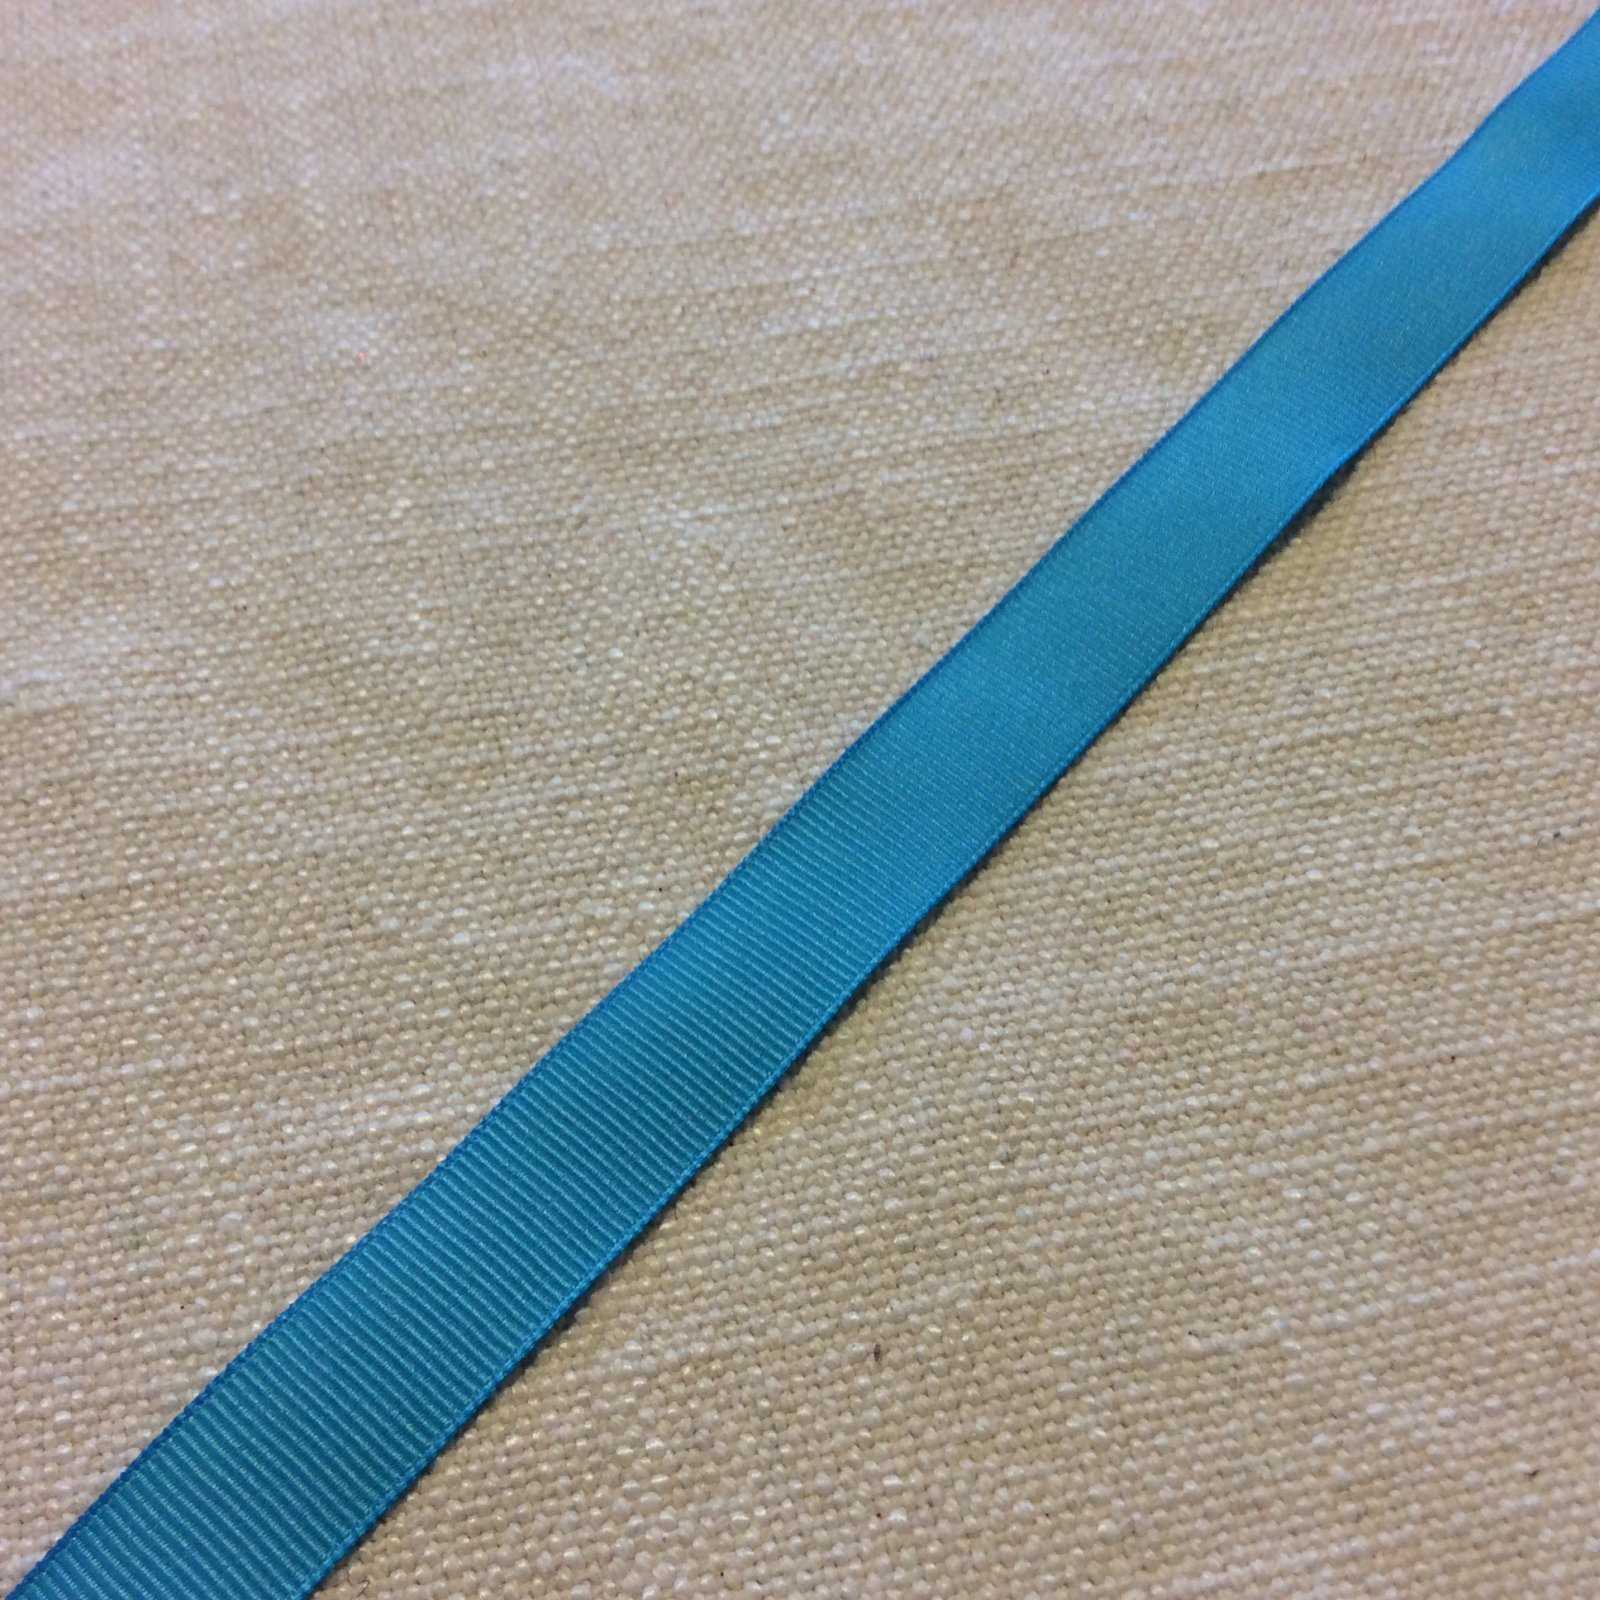 Grosgrain Ribbon Turquoise 5/8 Trim Ribbon RIB1108